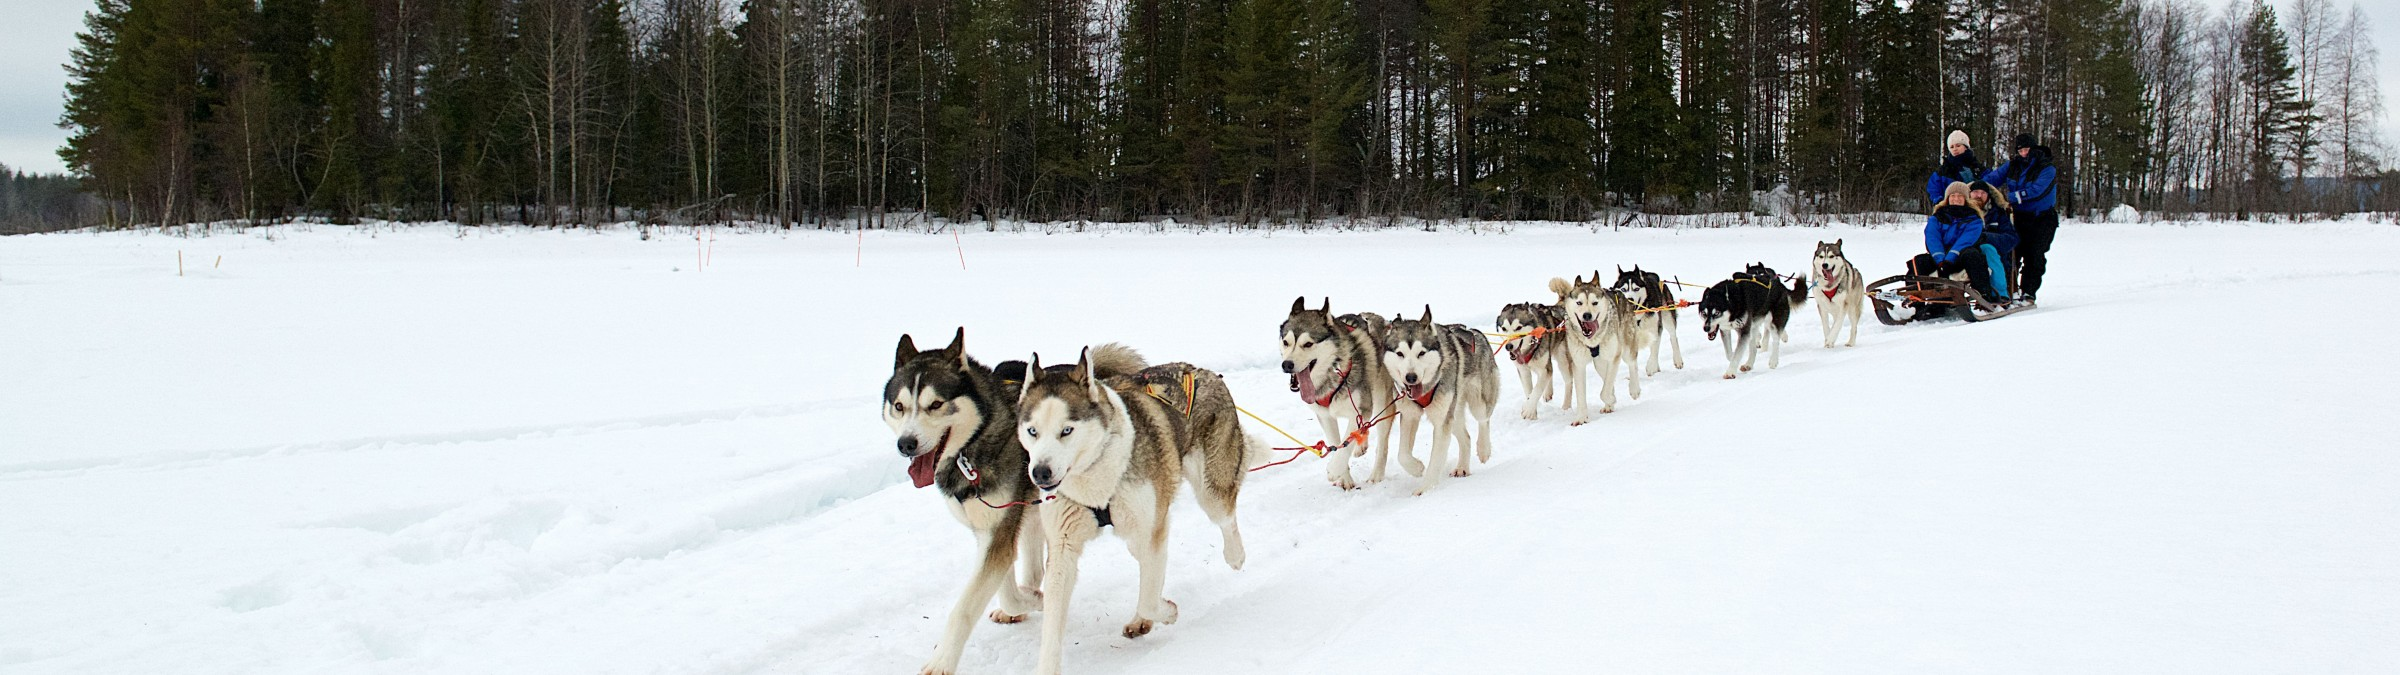 2015, February, Huskies, Lulea, Sorbyn